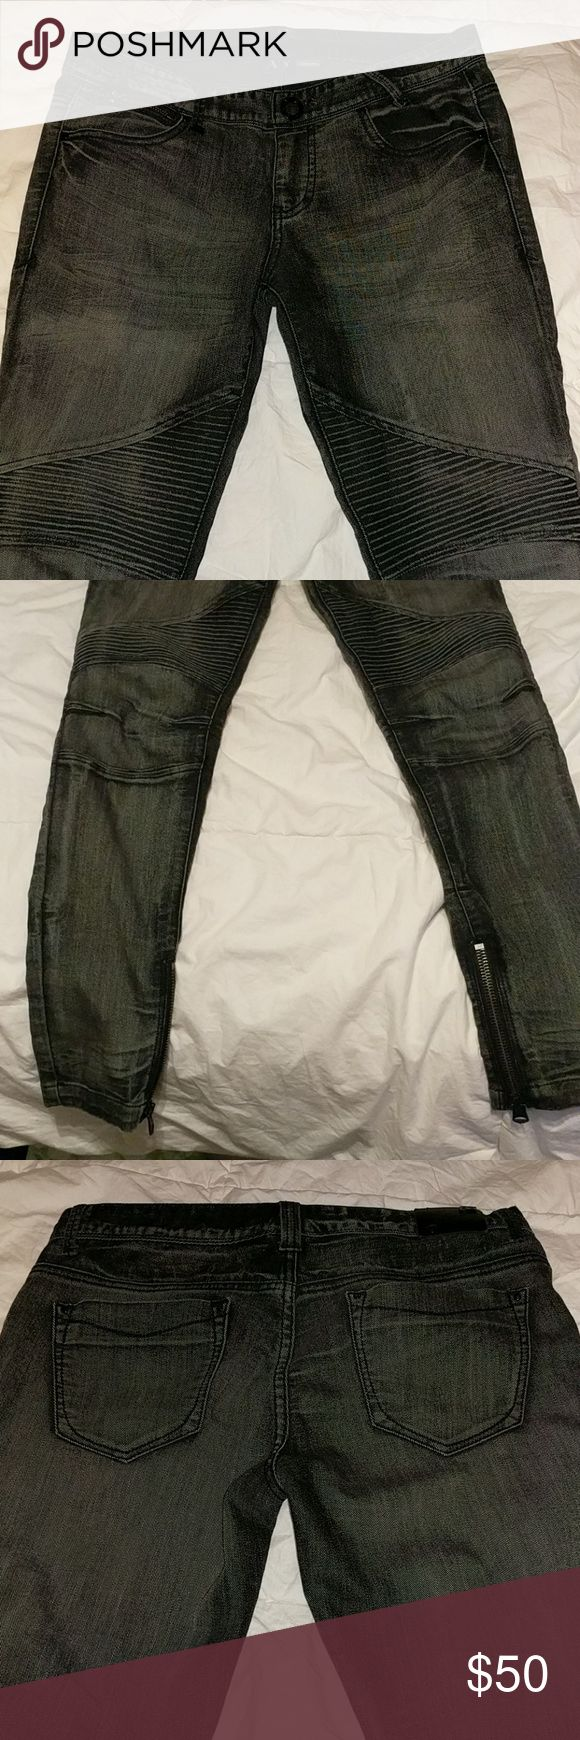 Armani Exchange skinny jeans with zipper cuffs Worn once for fashion show Armani Exchange Jeans Skinny